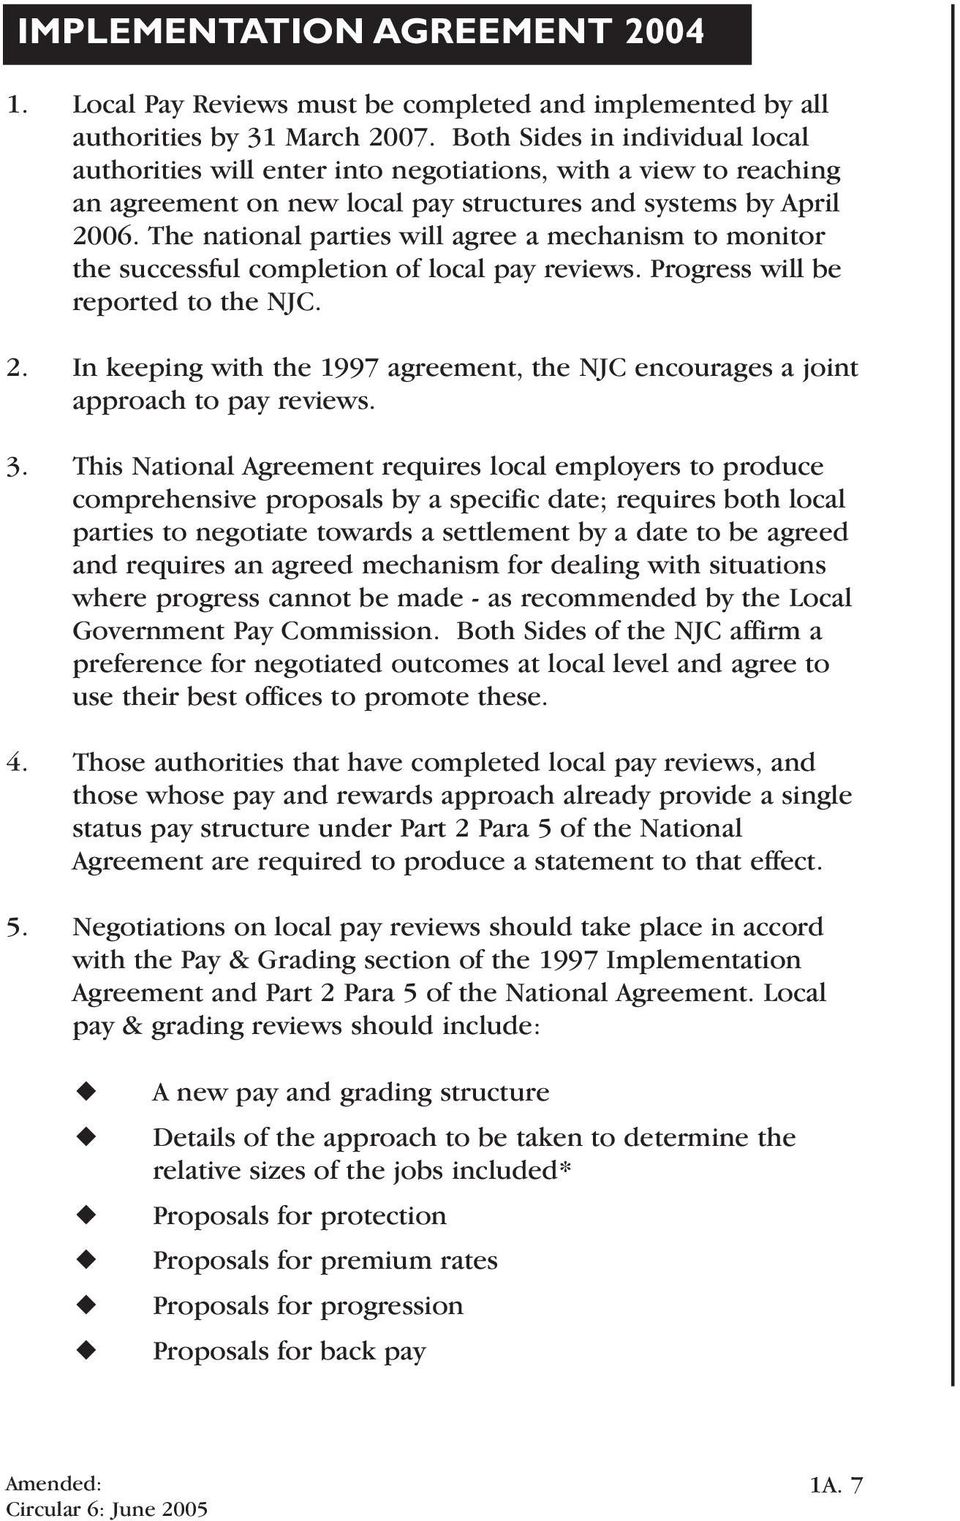 The national parties will agree a mechanism to monitor the successful completion of local pay reviews. Progress will be reported to the NJC. 2.